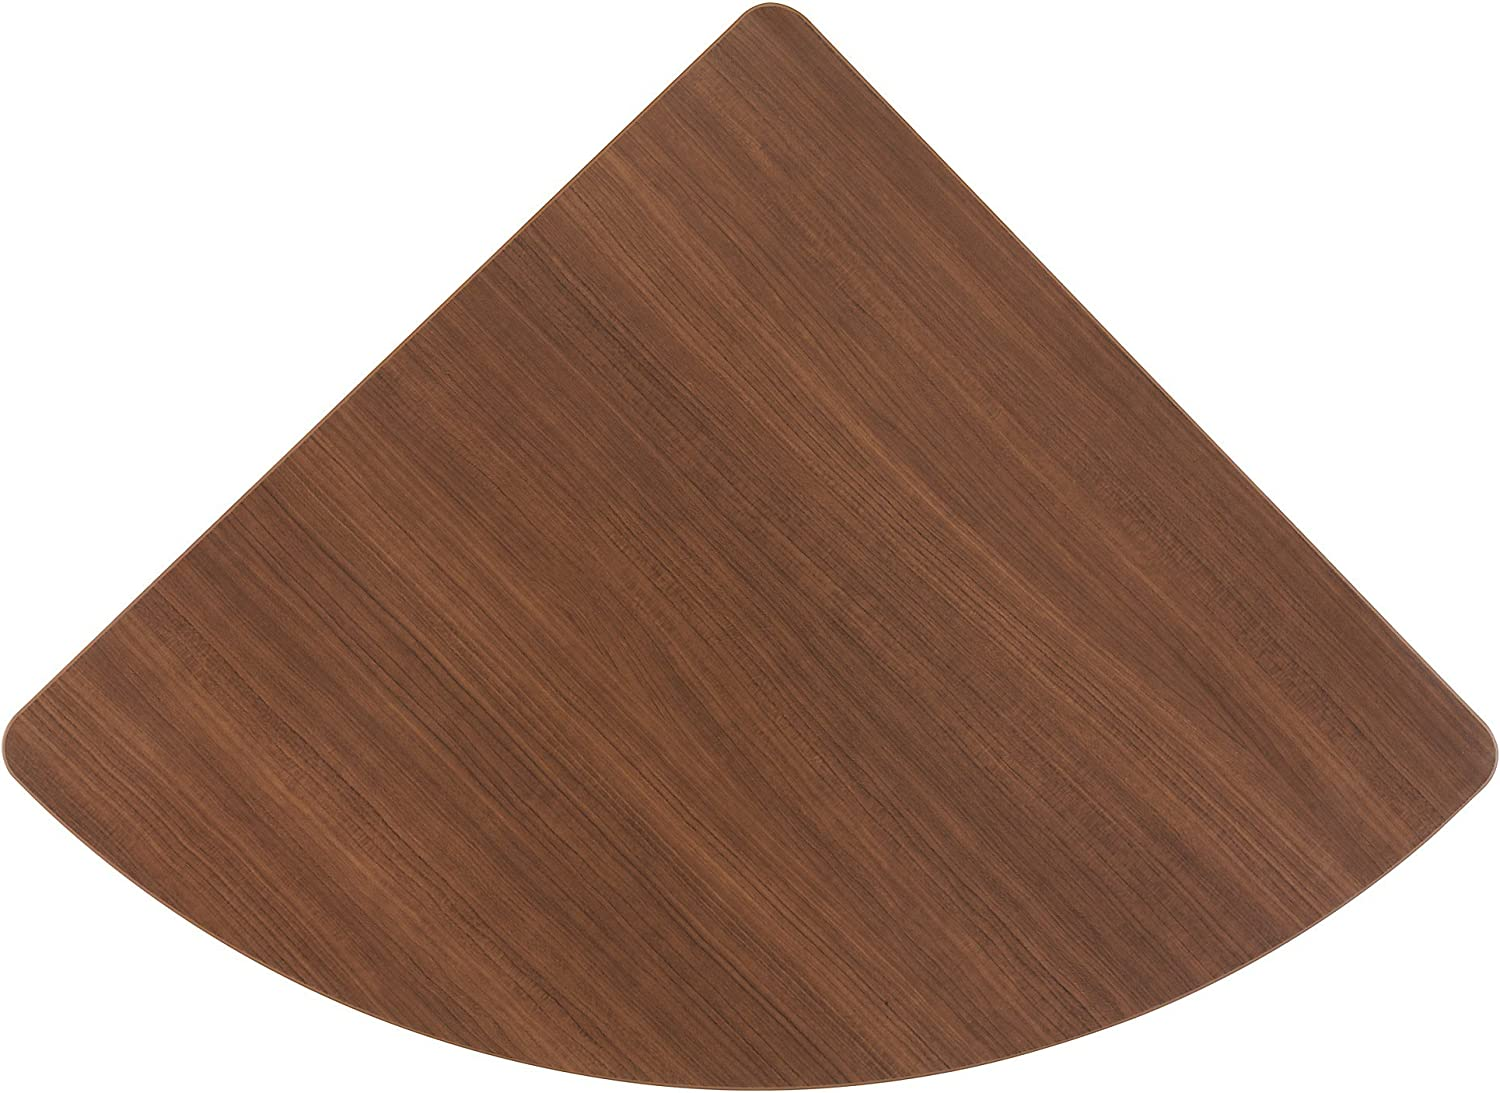 Bush Corner Connector, 26-7 8-Inch by 26-7 8-Inch by 1-Inch, Sienna Walnut Bronze